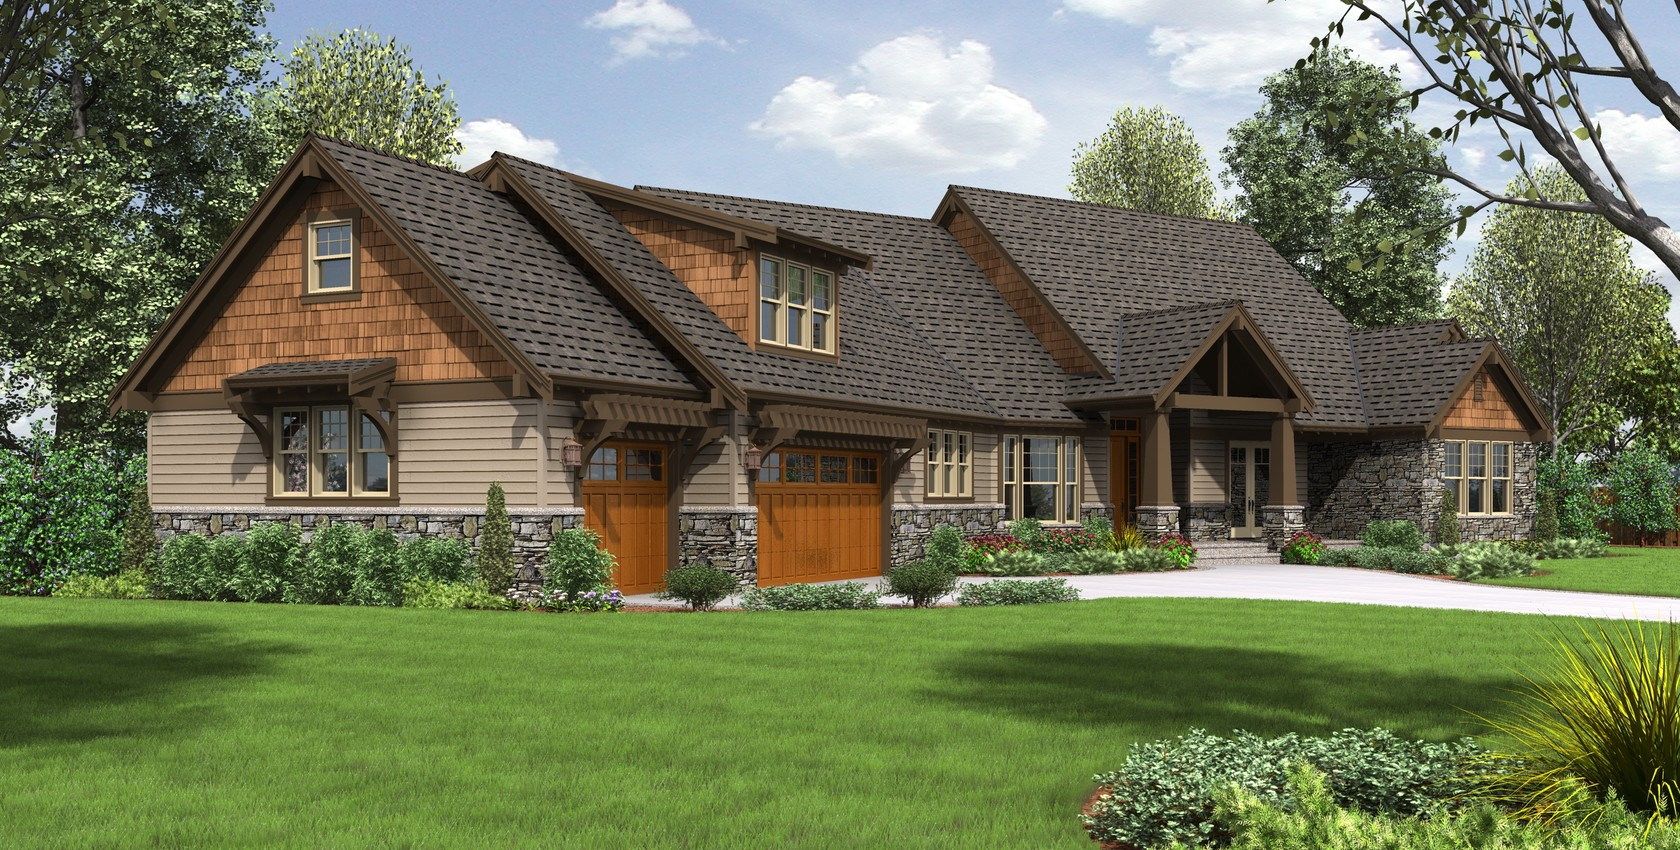 Image for Braecroft-Picturesque Lodge Home Plan with Space for Work and Play-6388